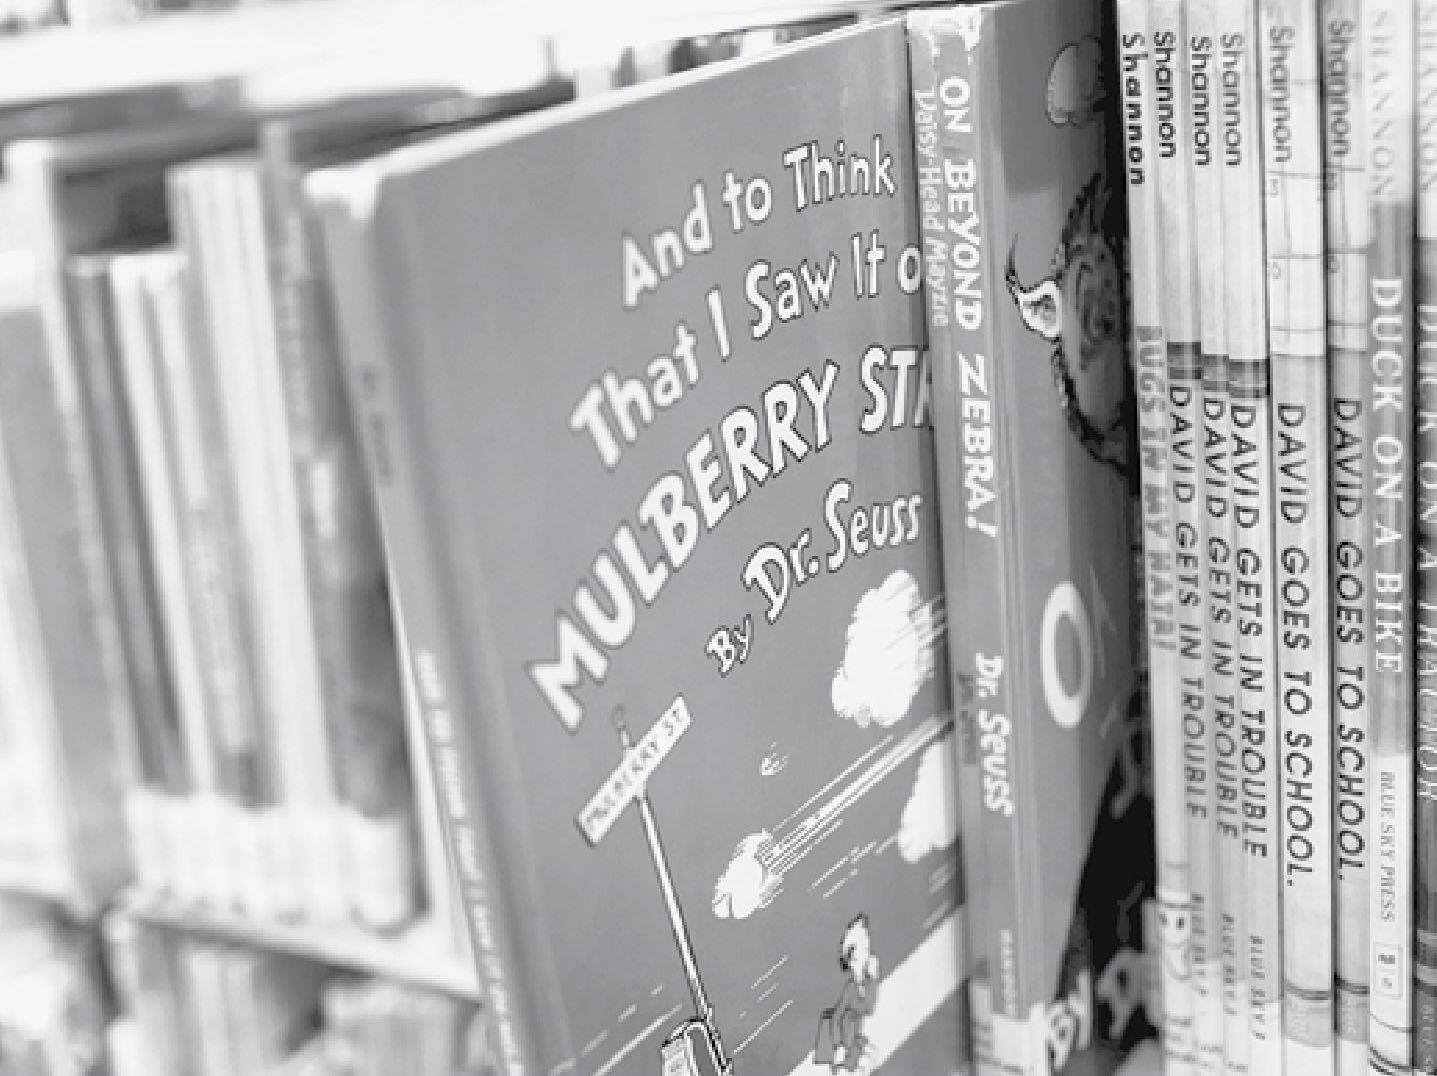 Don't tell us what to read; Cleary, Seuss were products of their time